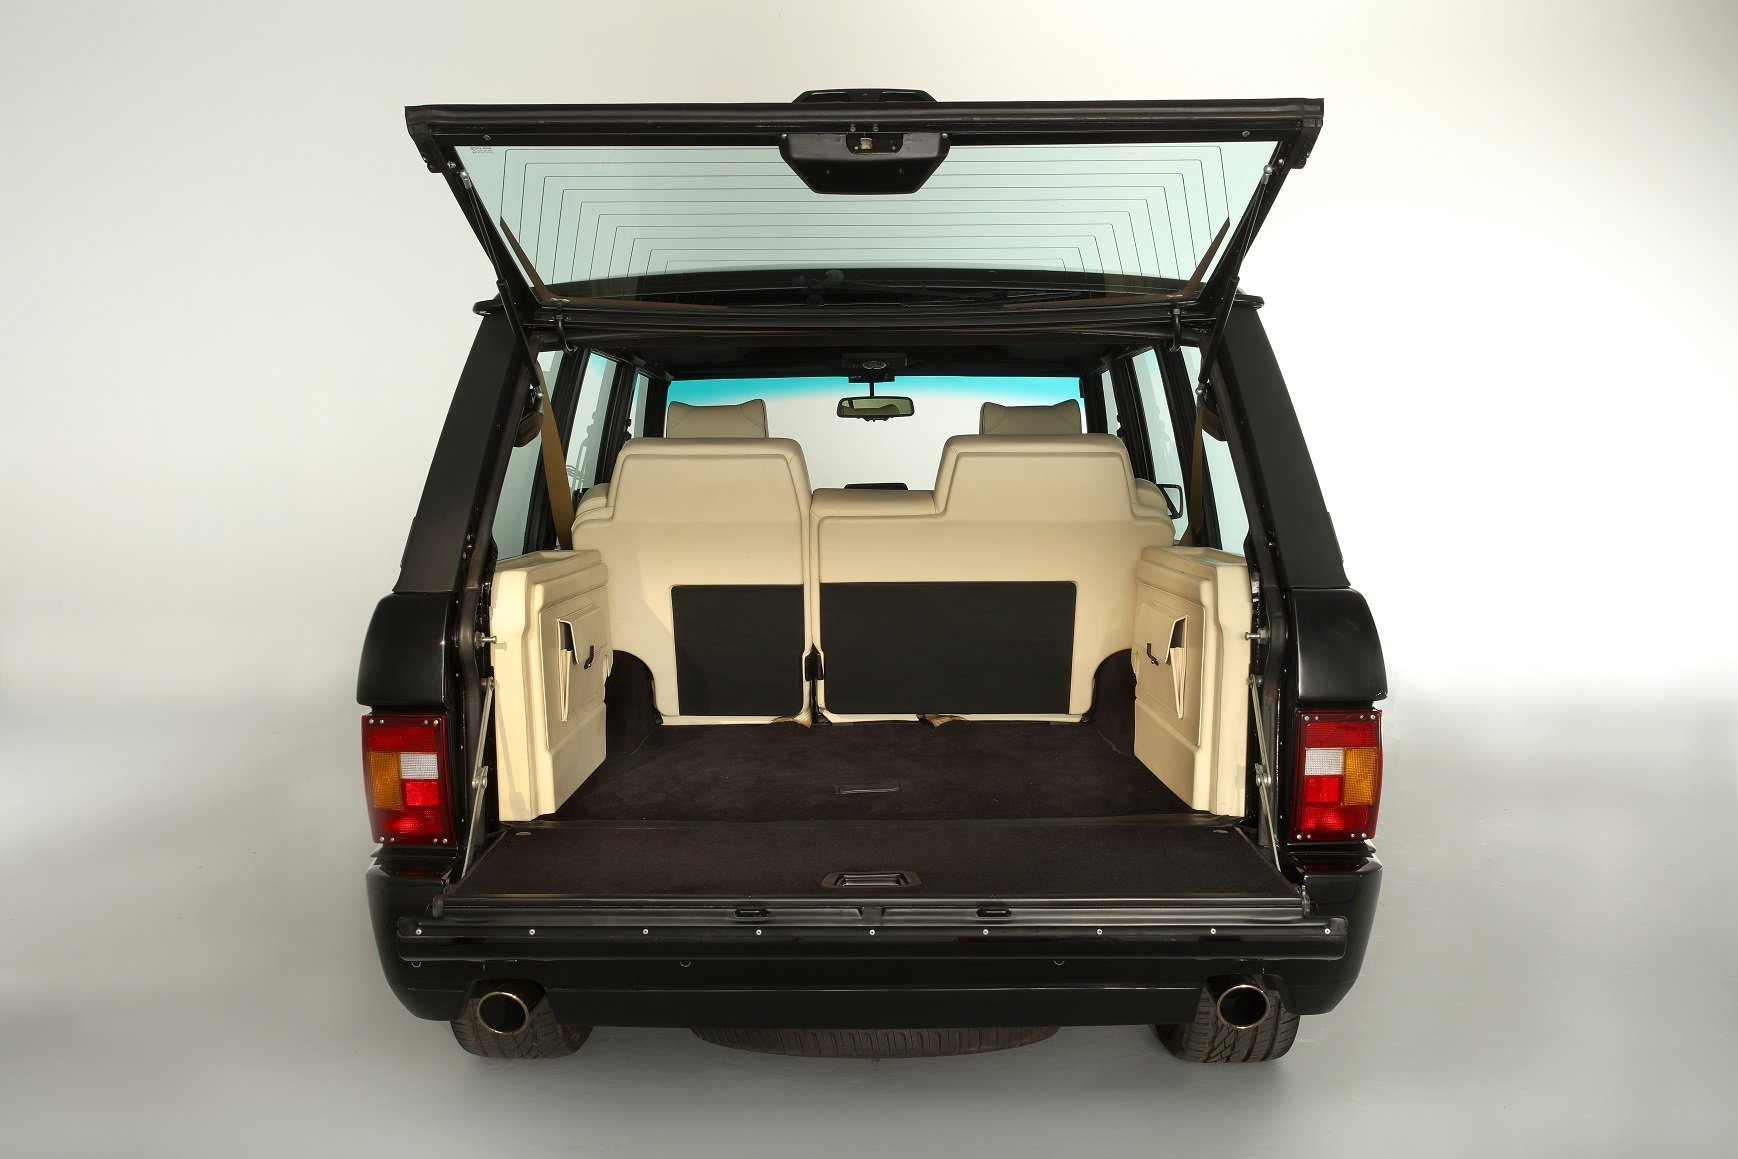 2004 Range Rover Chieftain, re-engineered Supercar For Sale (picture 6 of 6)